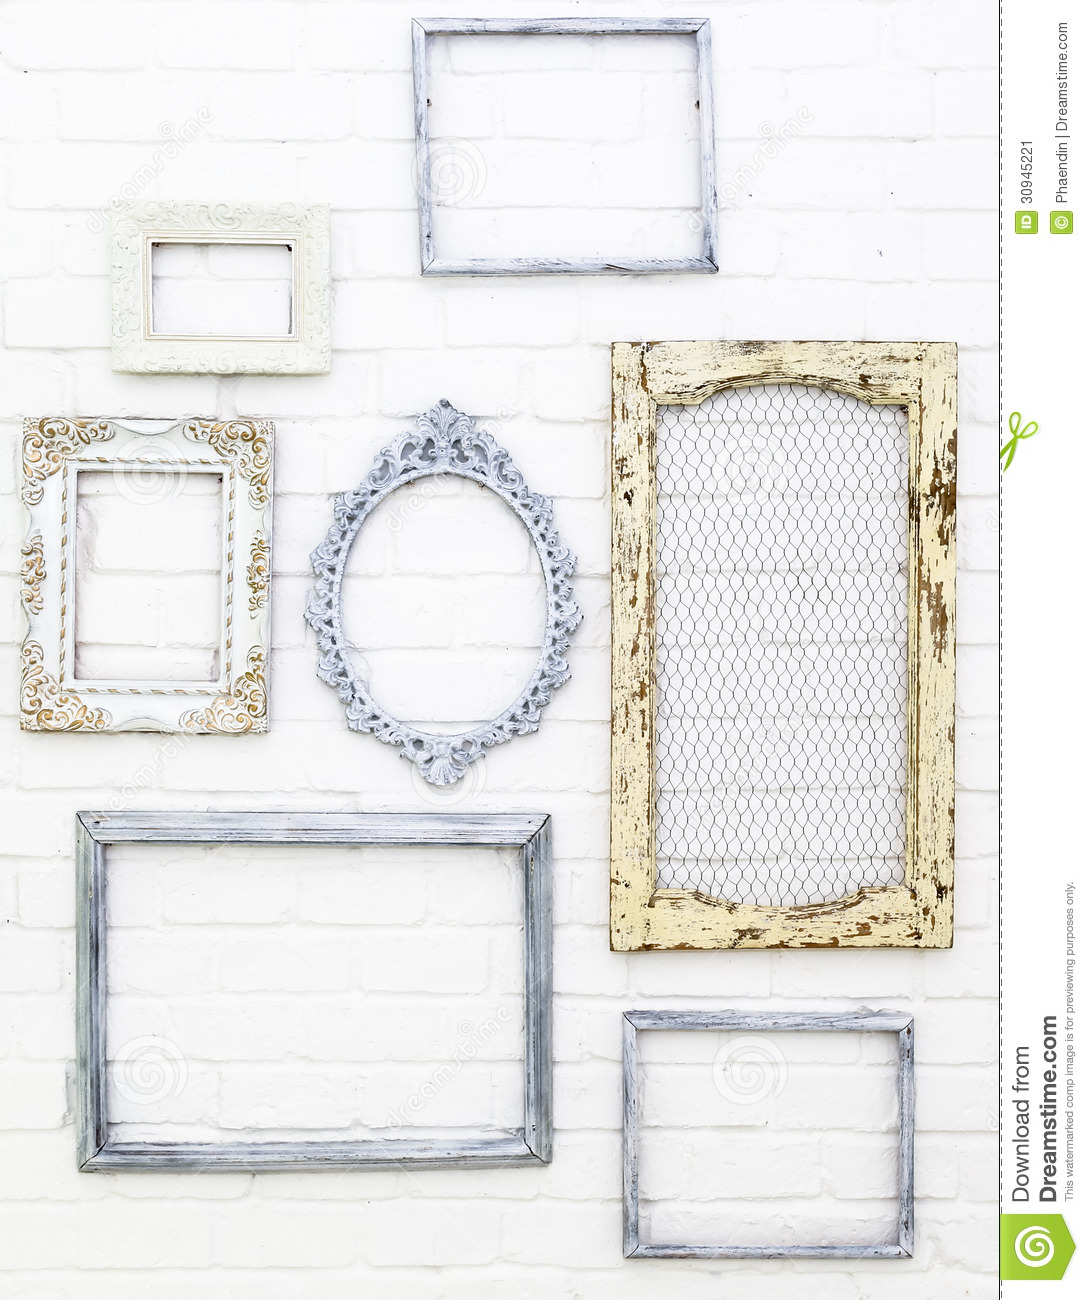 Vintage picture frames on white brick wall stock image for Decoracion para pared vintage